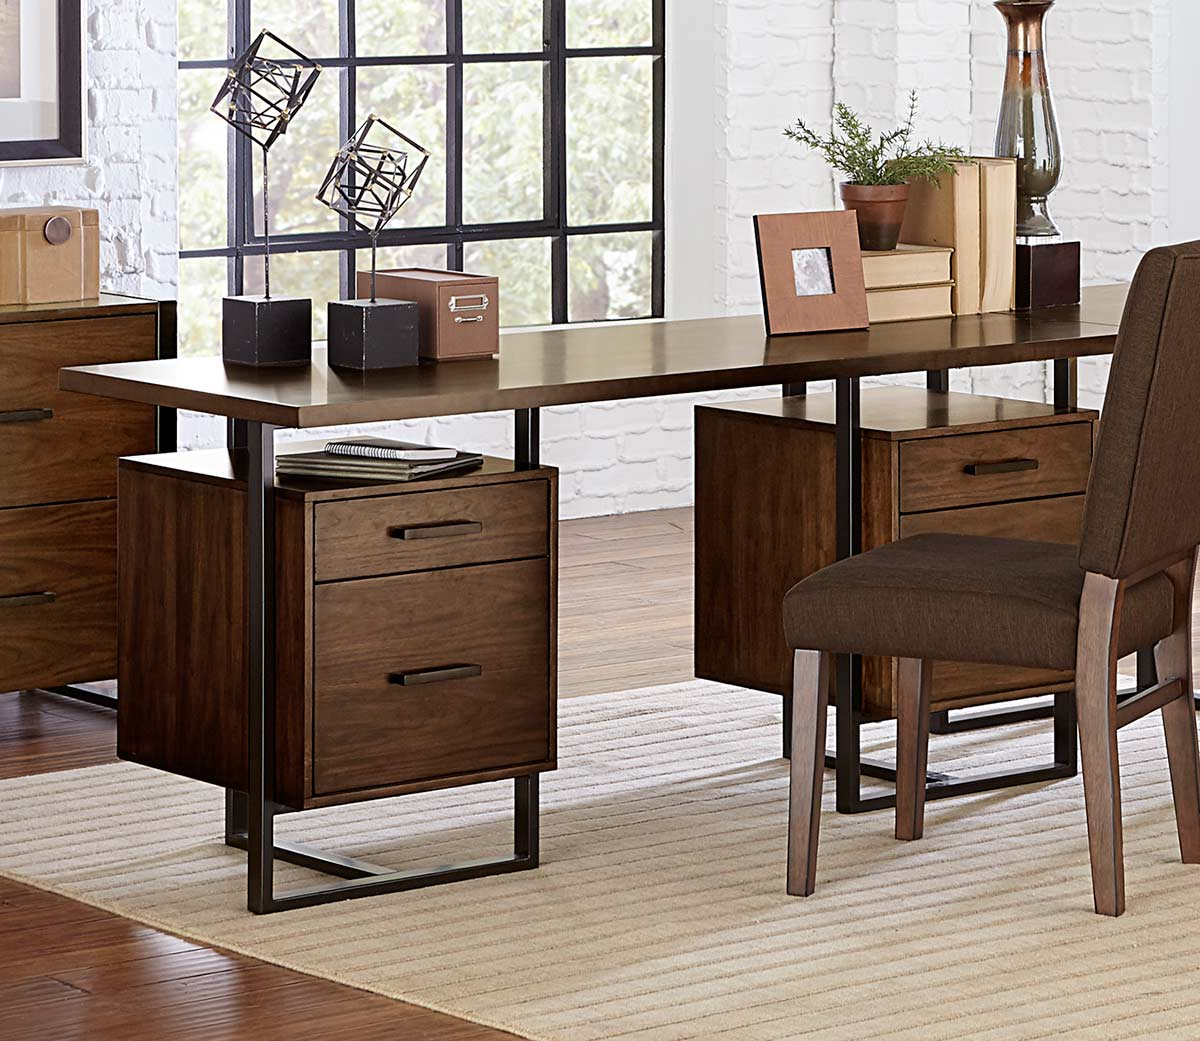 Homelegance Sedley Writing Desk with Two Cabinets - Walnut